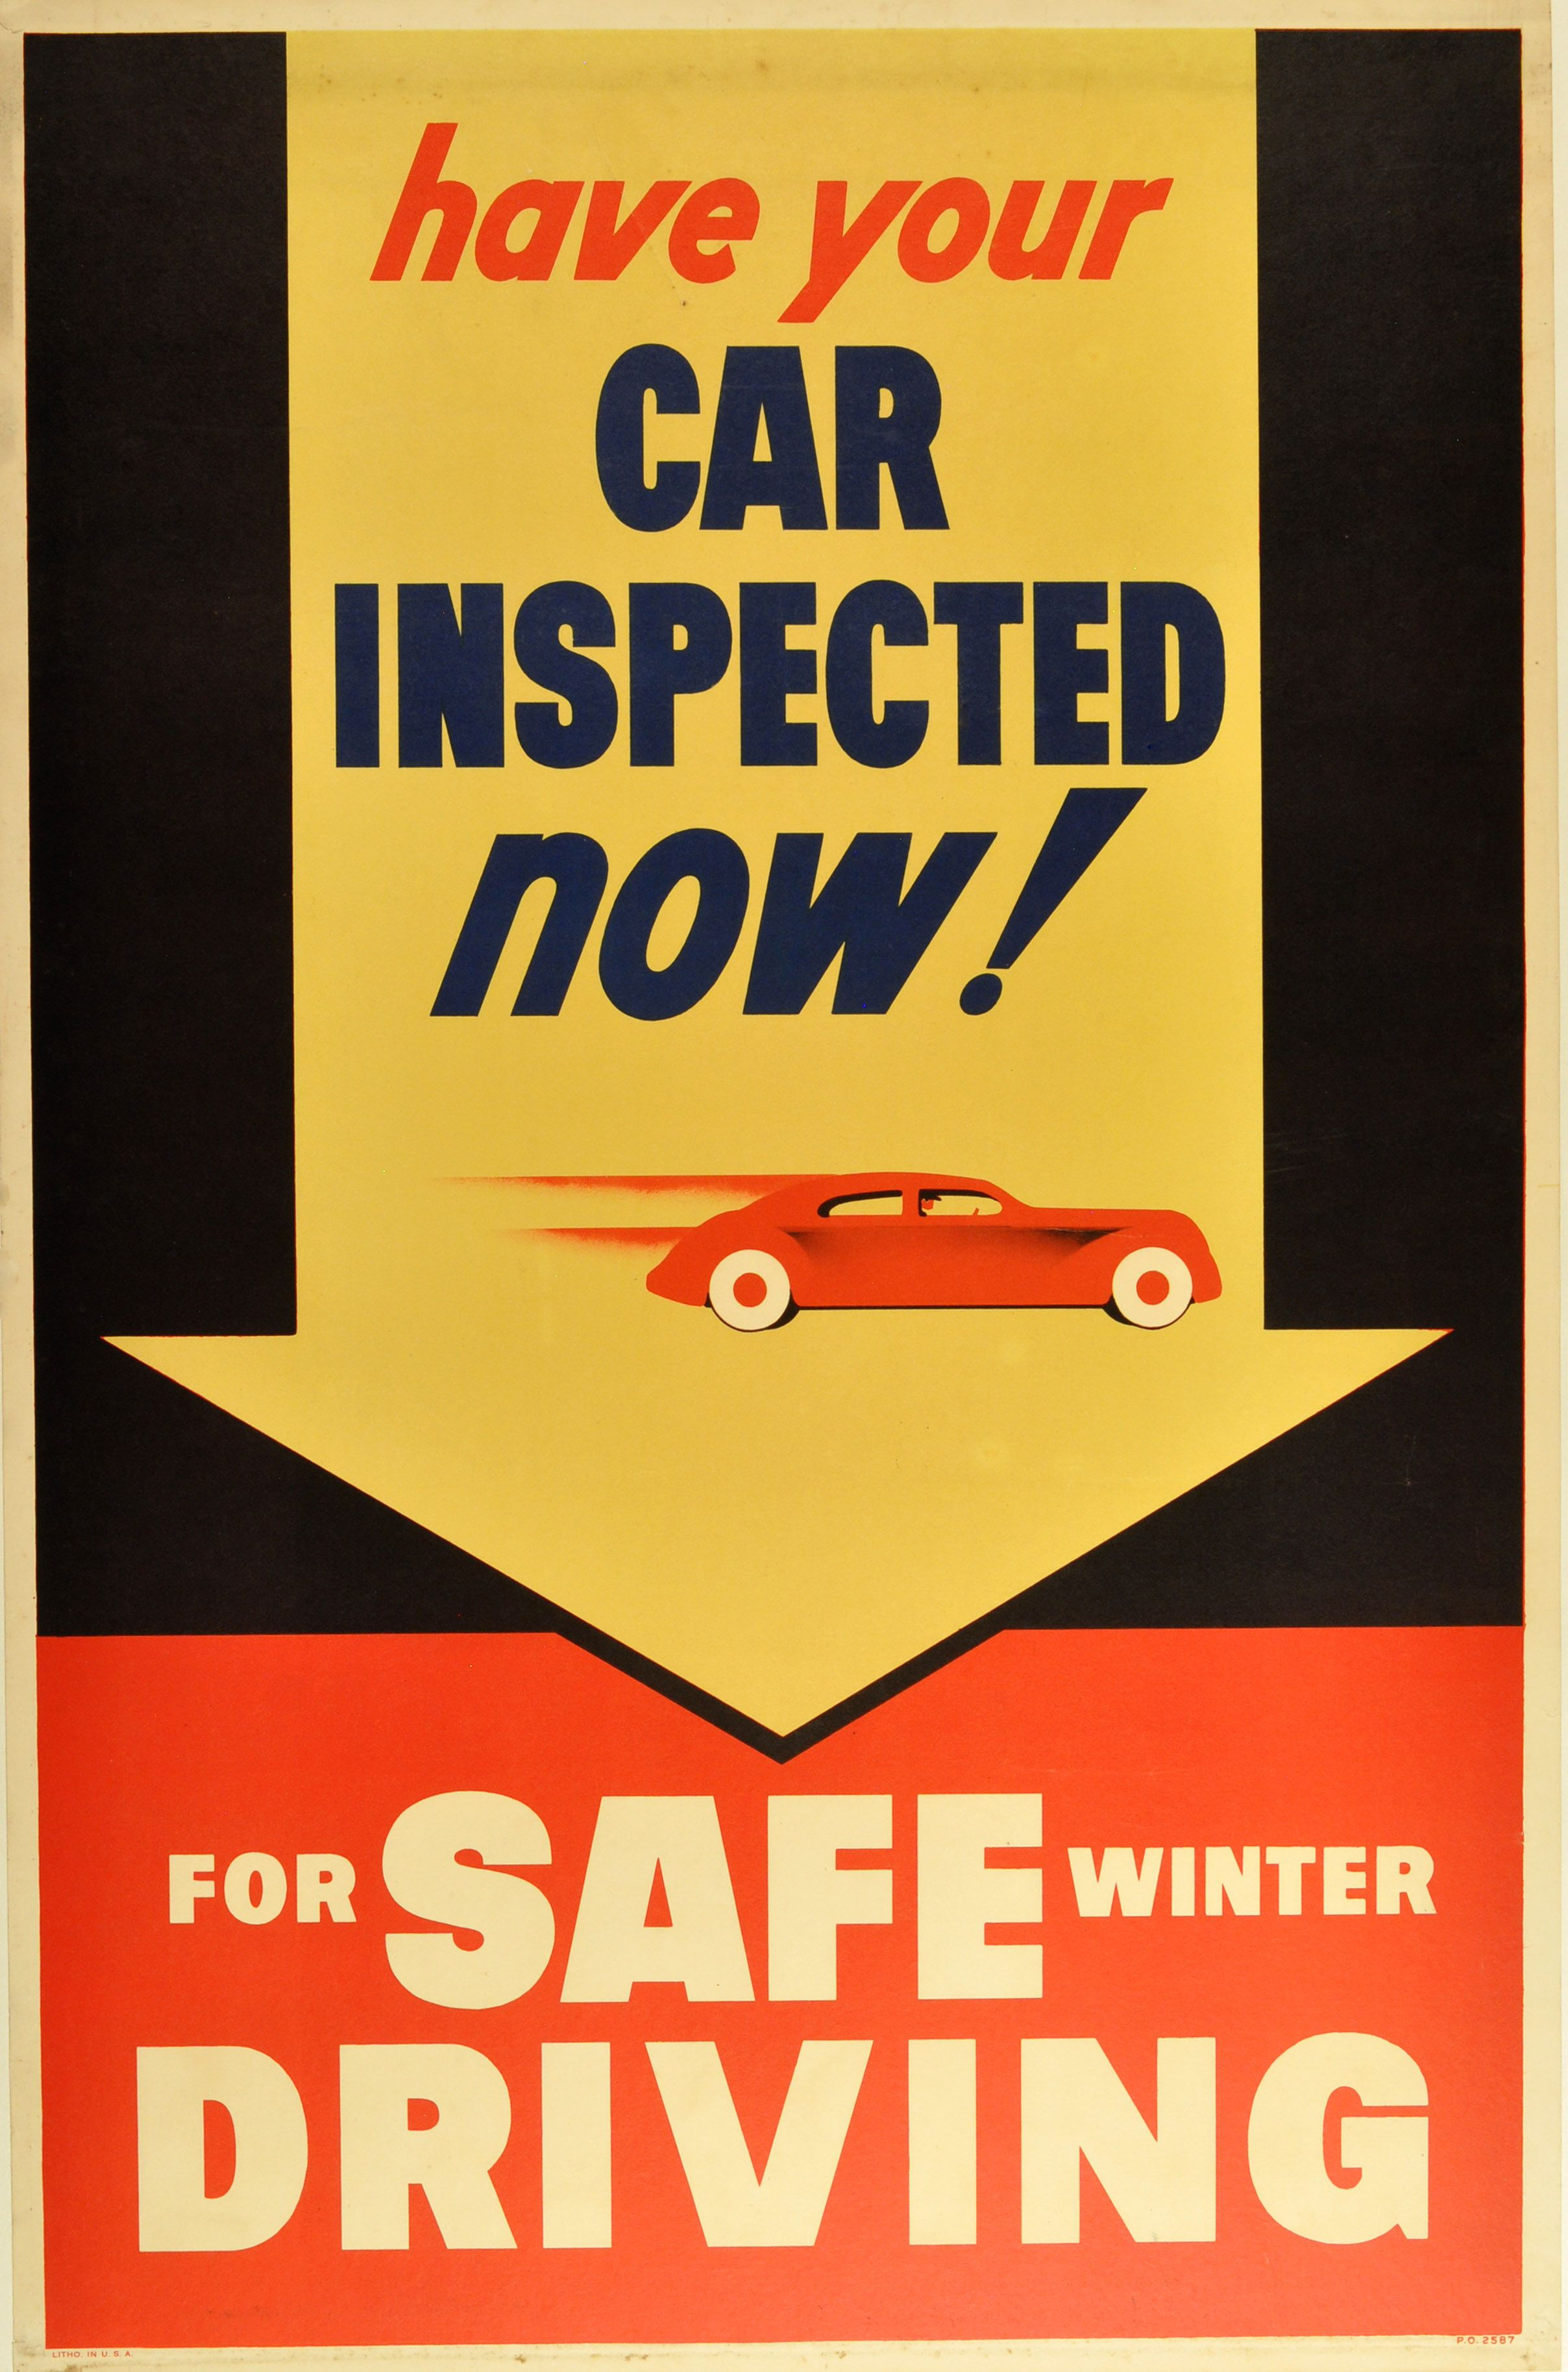 Have Your Car Inspected Now, 1950s - original vintage poster